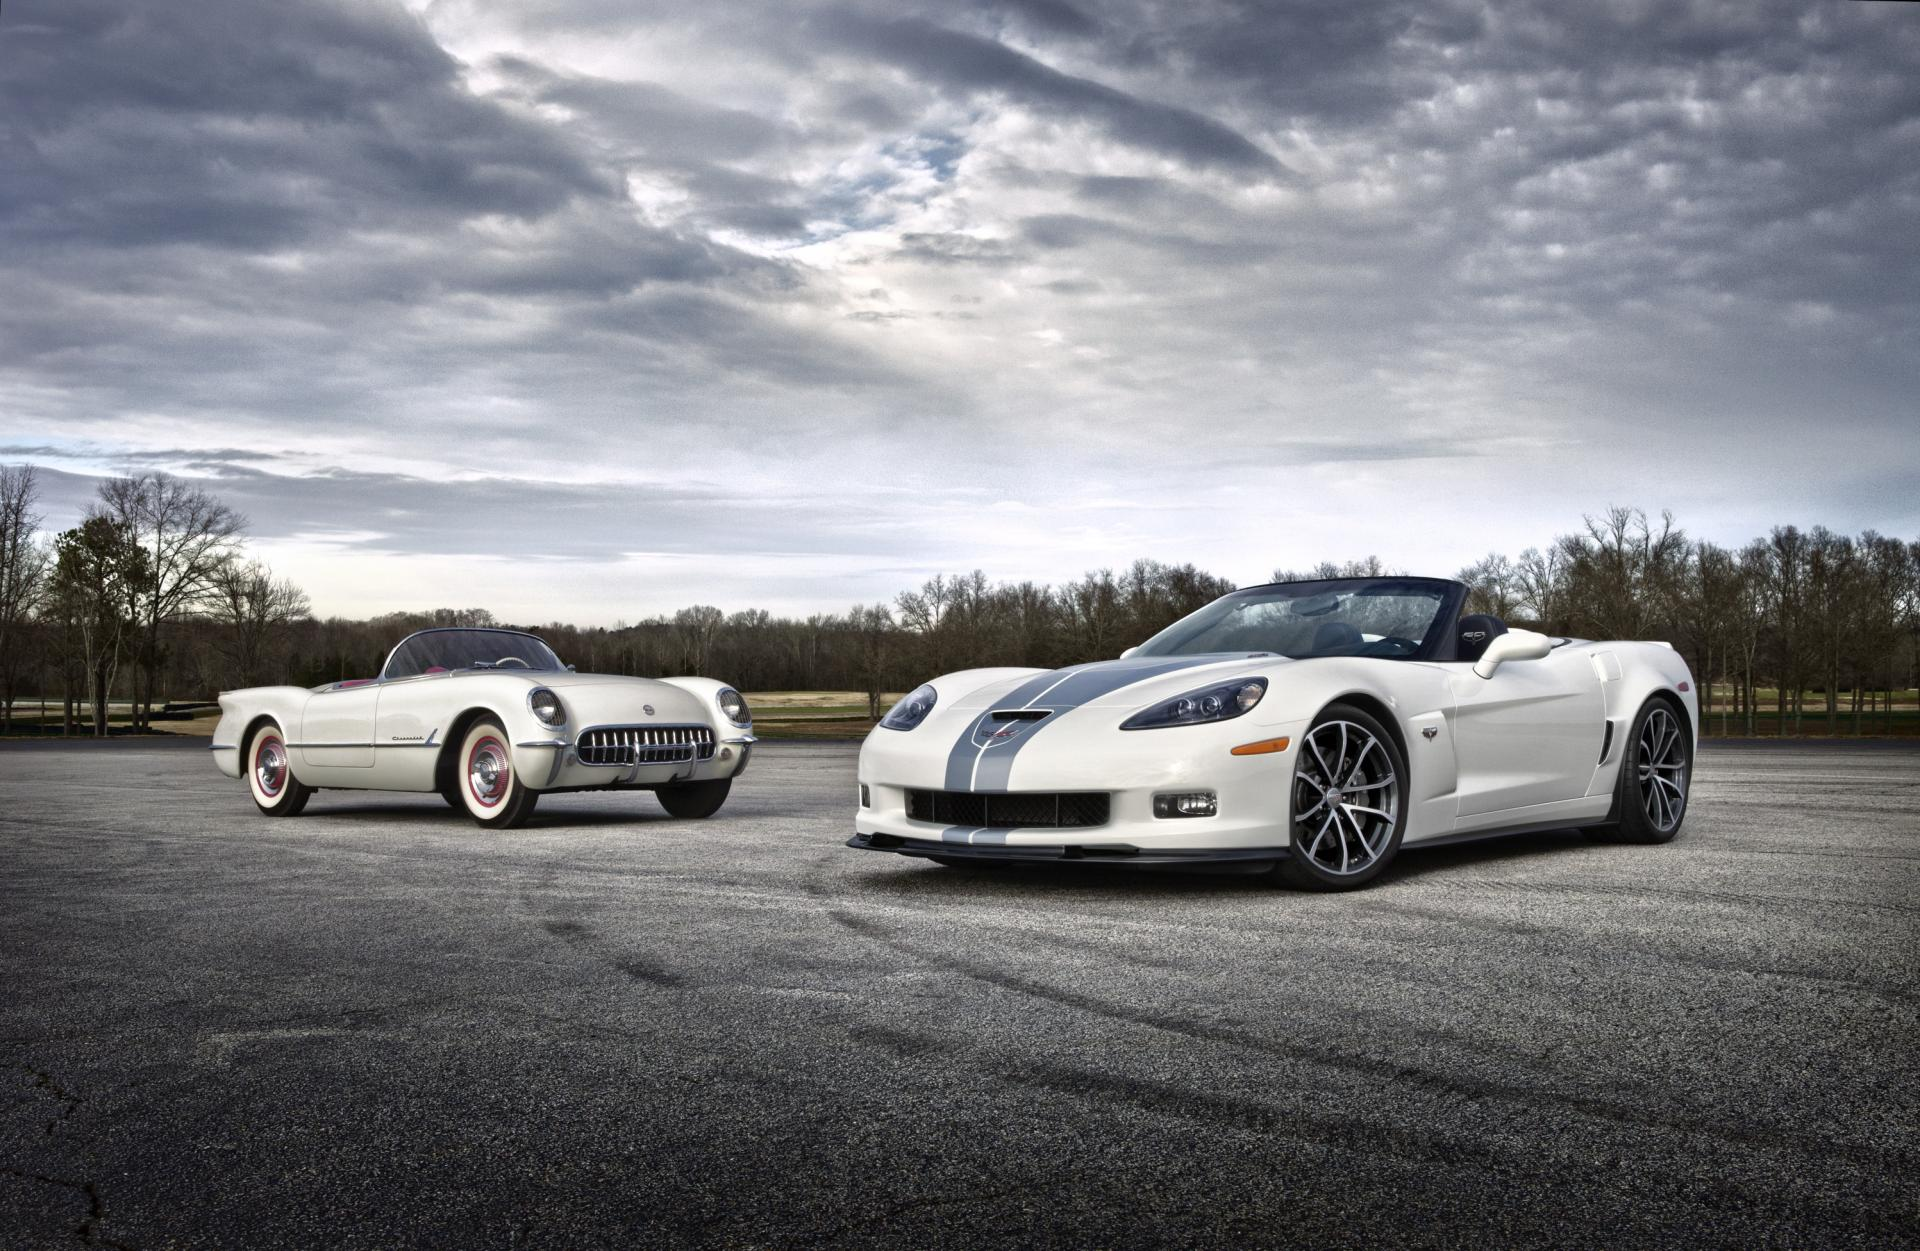 H And H Auto Sales >> 2013 Chevrolet Corvette 60th Anniversary Package News and ...